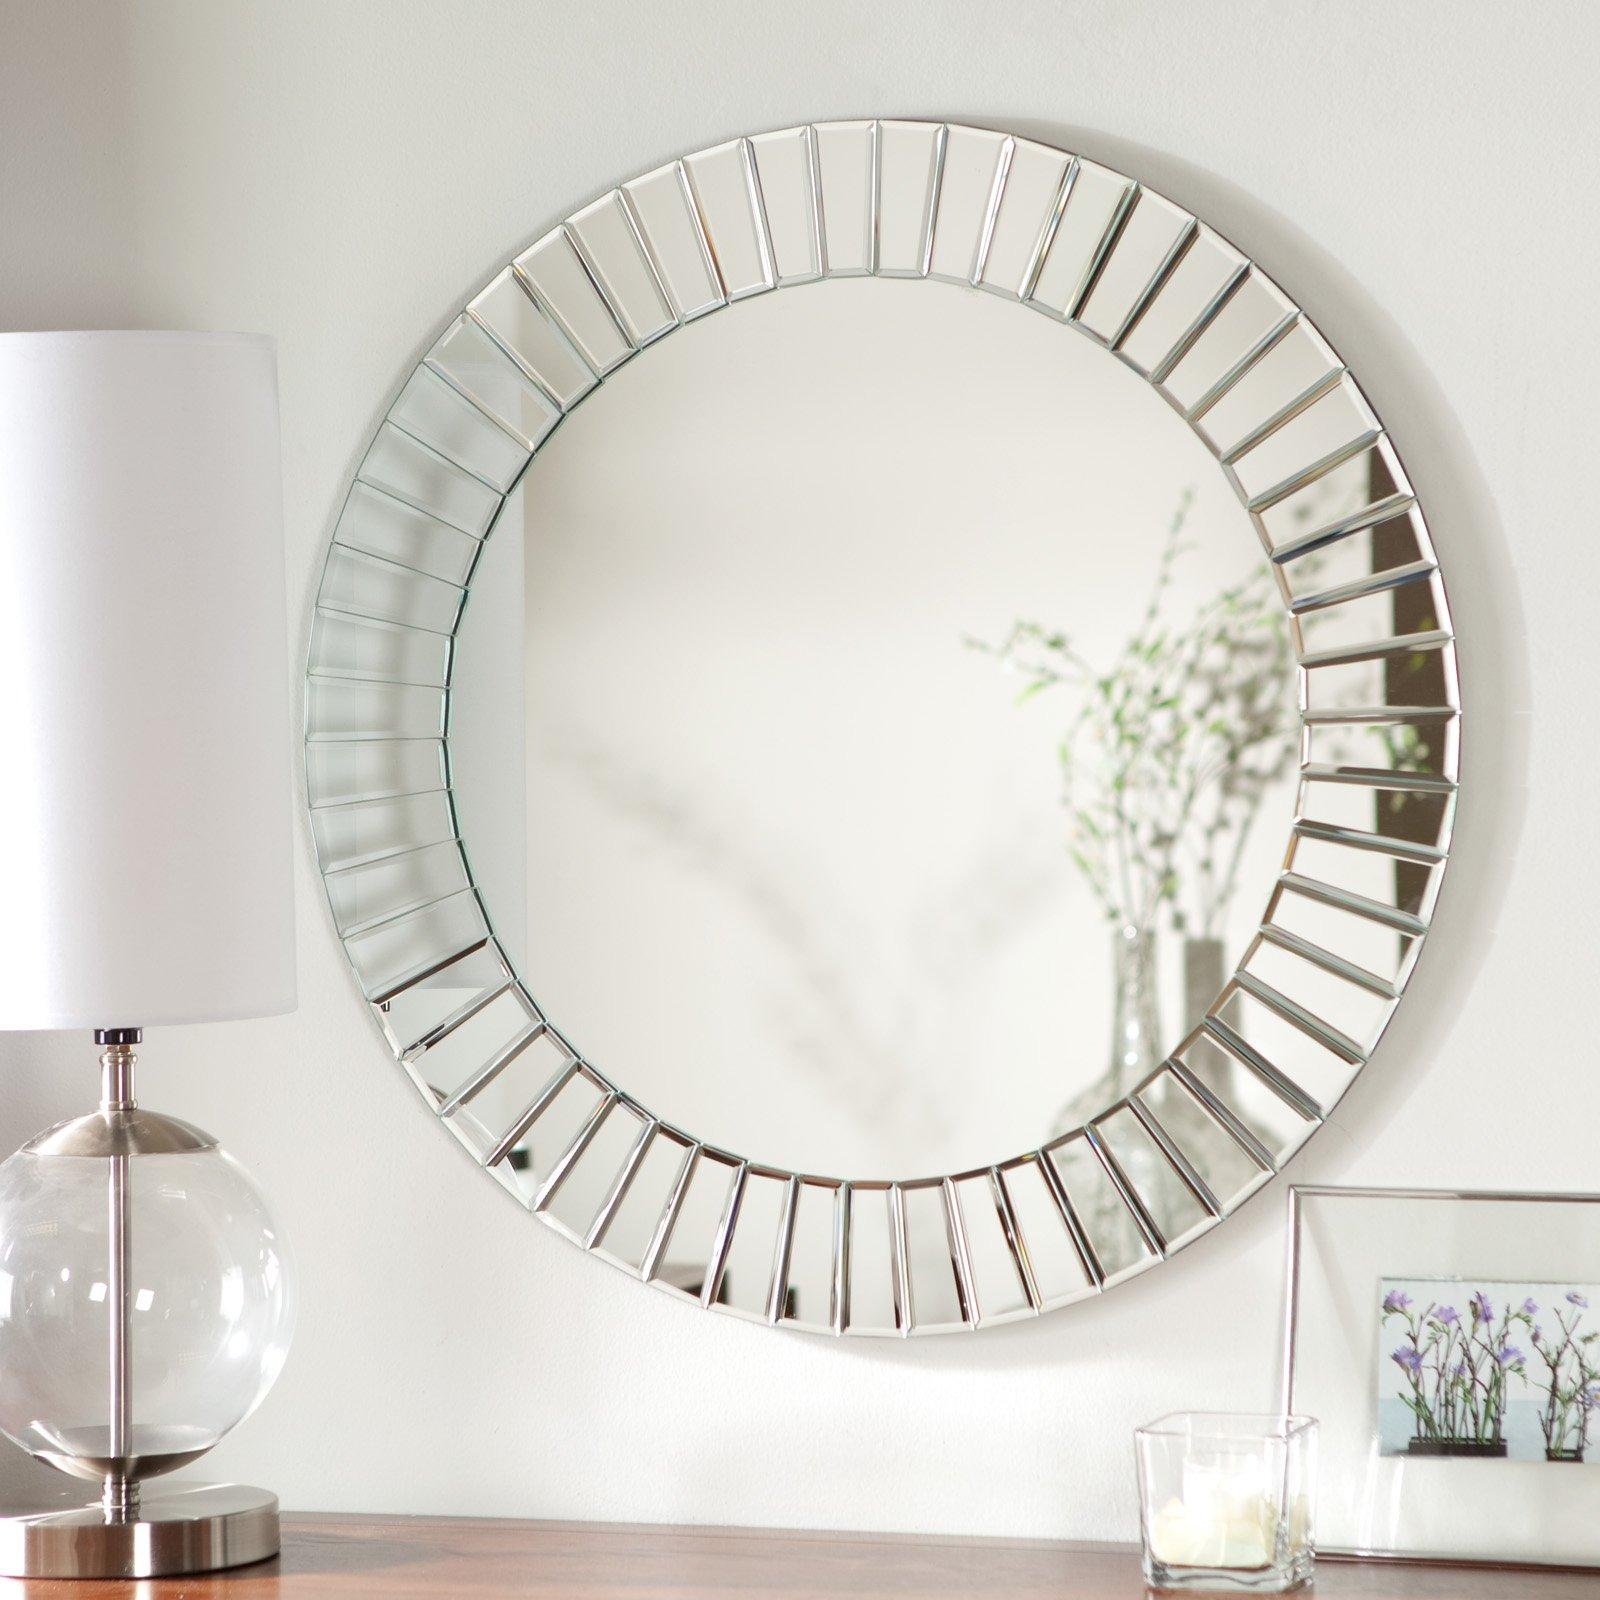 Cozy Design Decor Decorative Wall Mirrors Contemporary Wall For Fancy Wall Mirrors For Sale (Image 6 of 20)